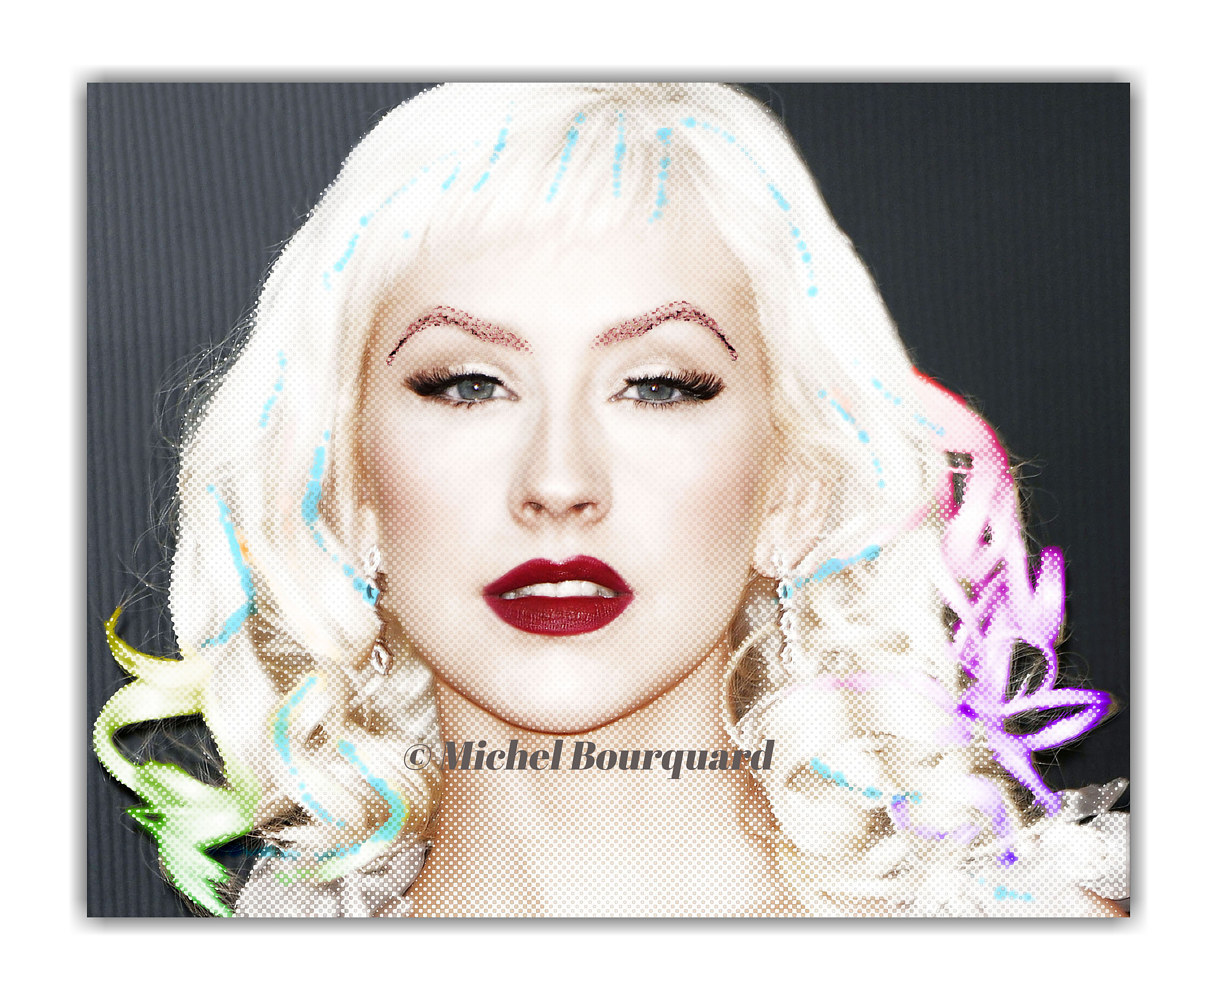 Christina Aguilera glow and colors tinted hair by Michel Bourquard